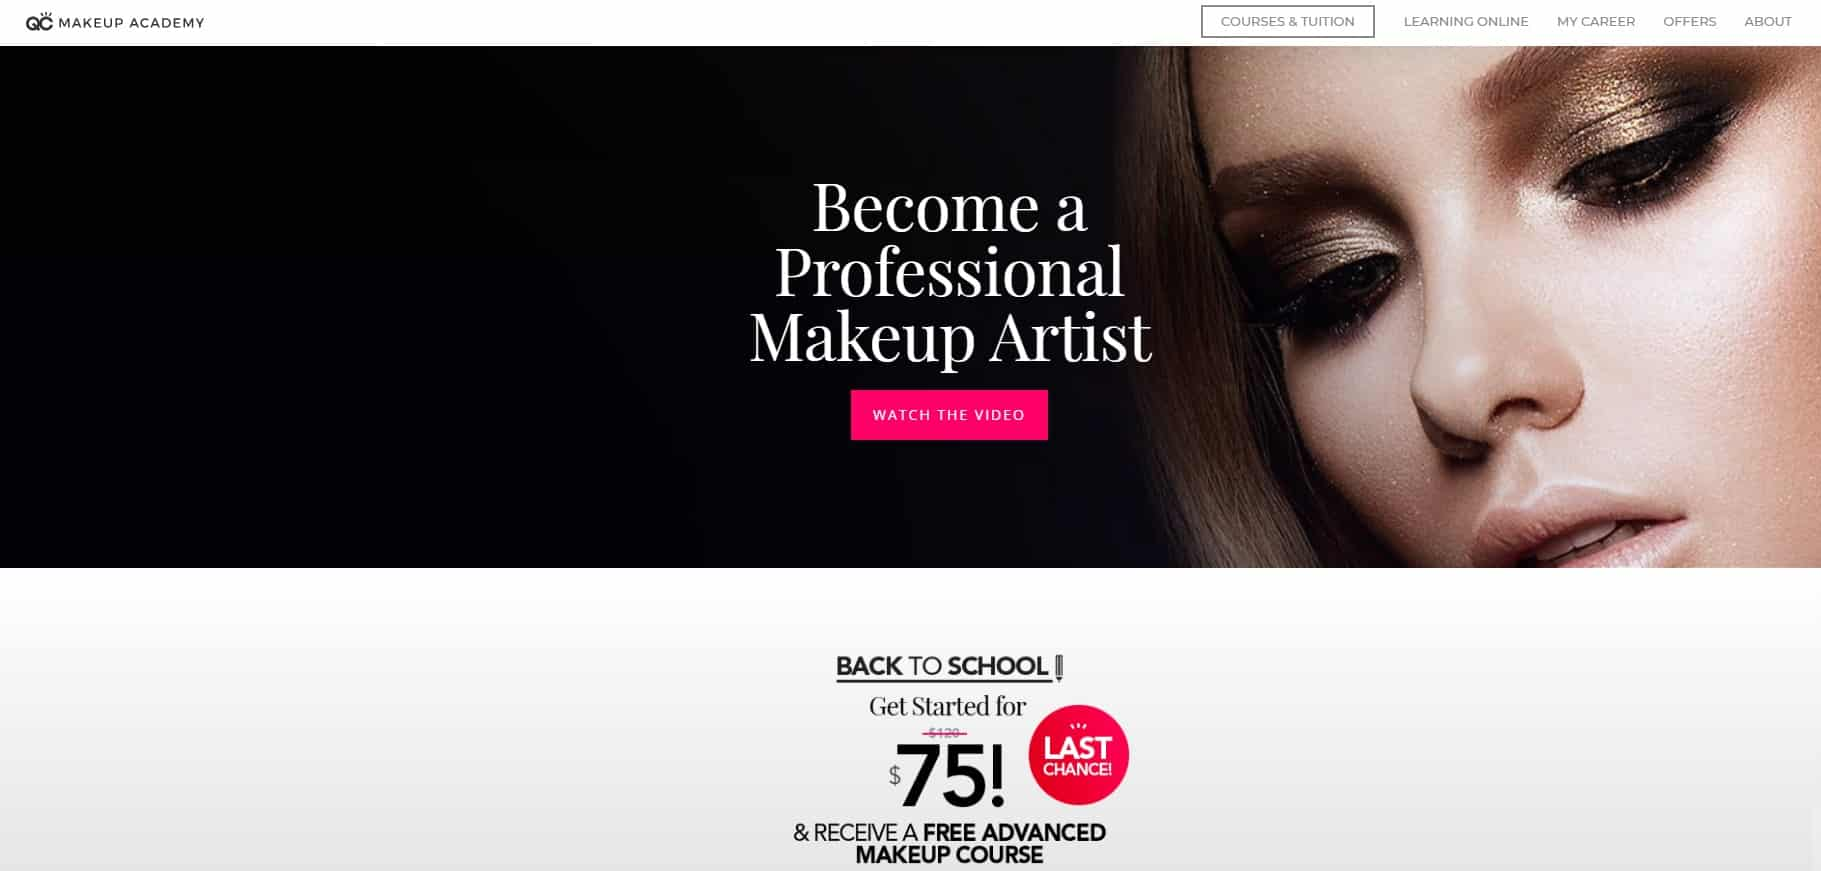 QC Makeup Academy Makeup and Beauty Lessons for Beginners